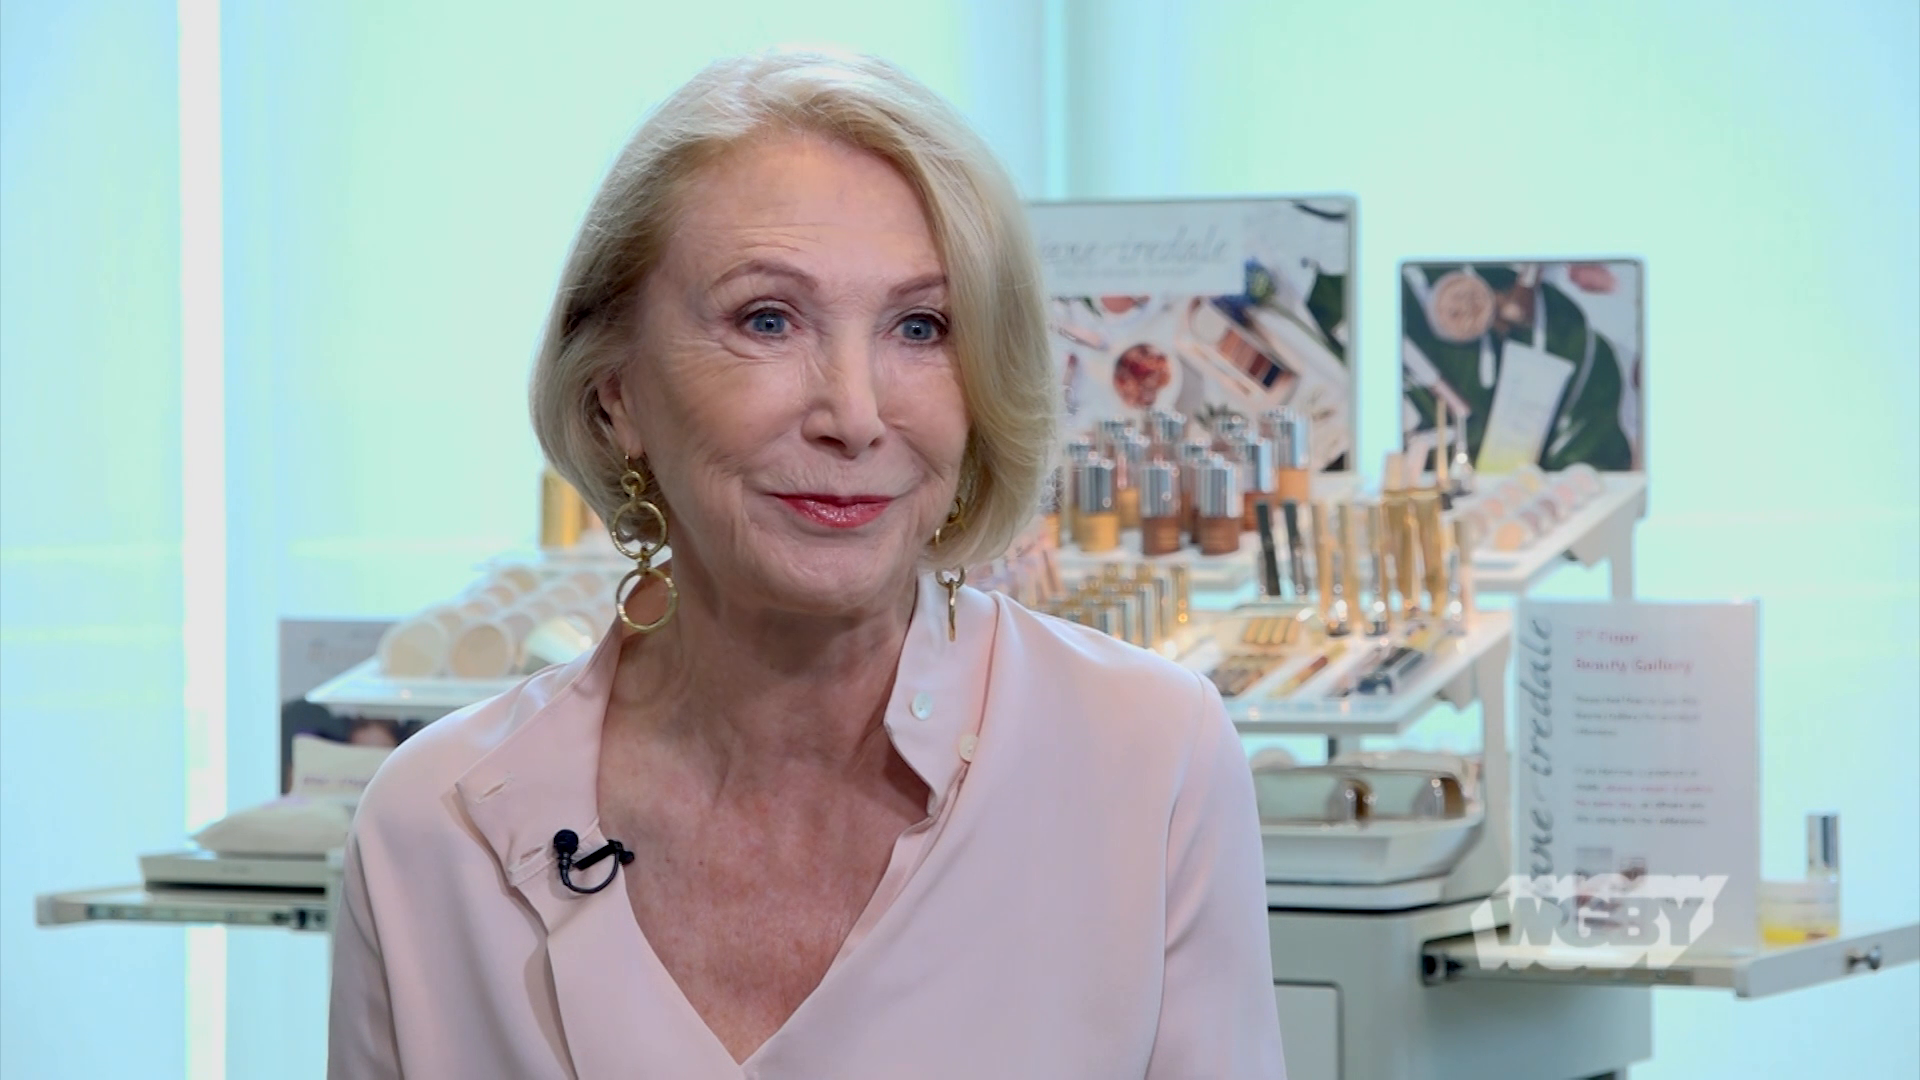 Women Business Leaders in the Berkshires continues with mineral makeup pioneer Jane Iredale, who shares the origins of Jane Iredale Cosmetics.